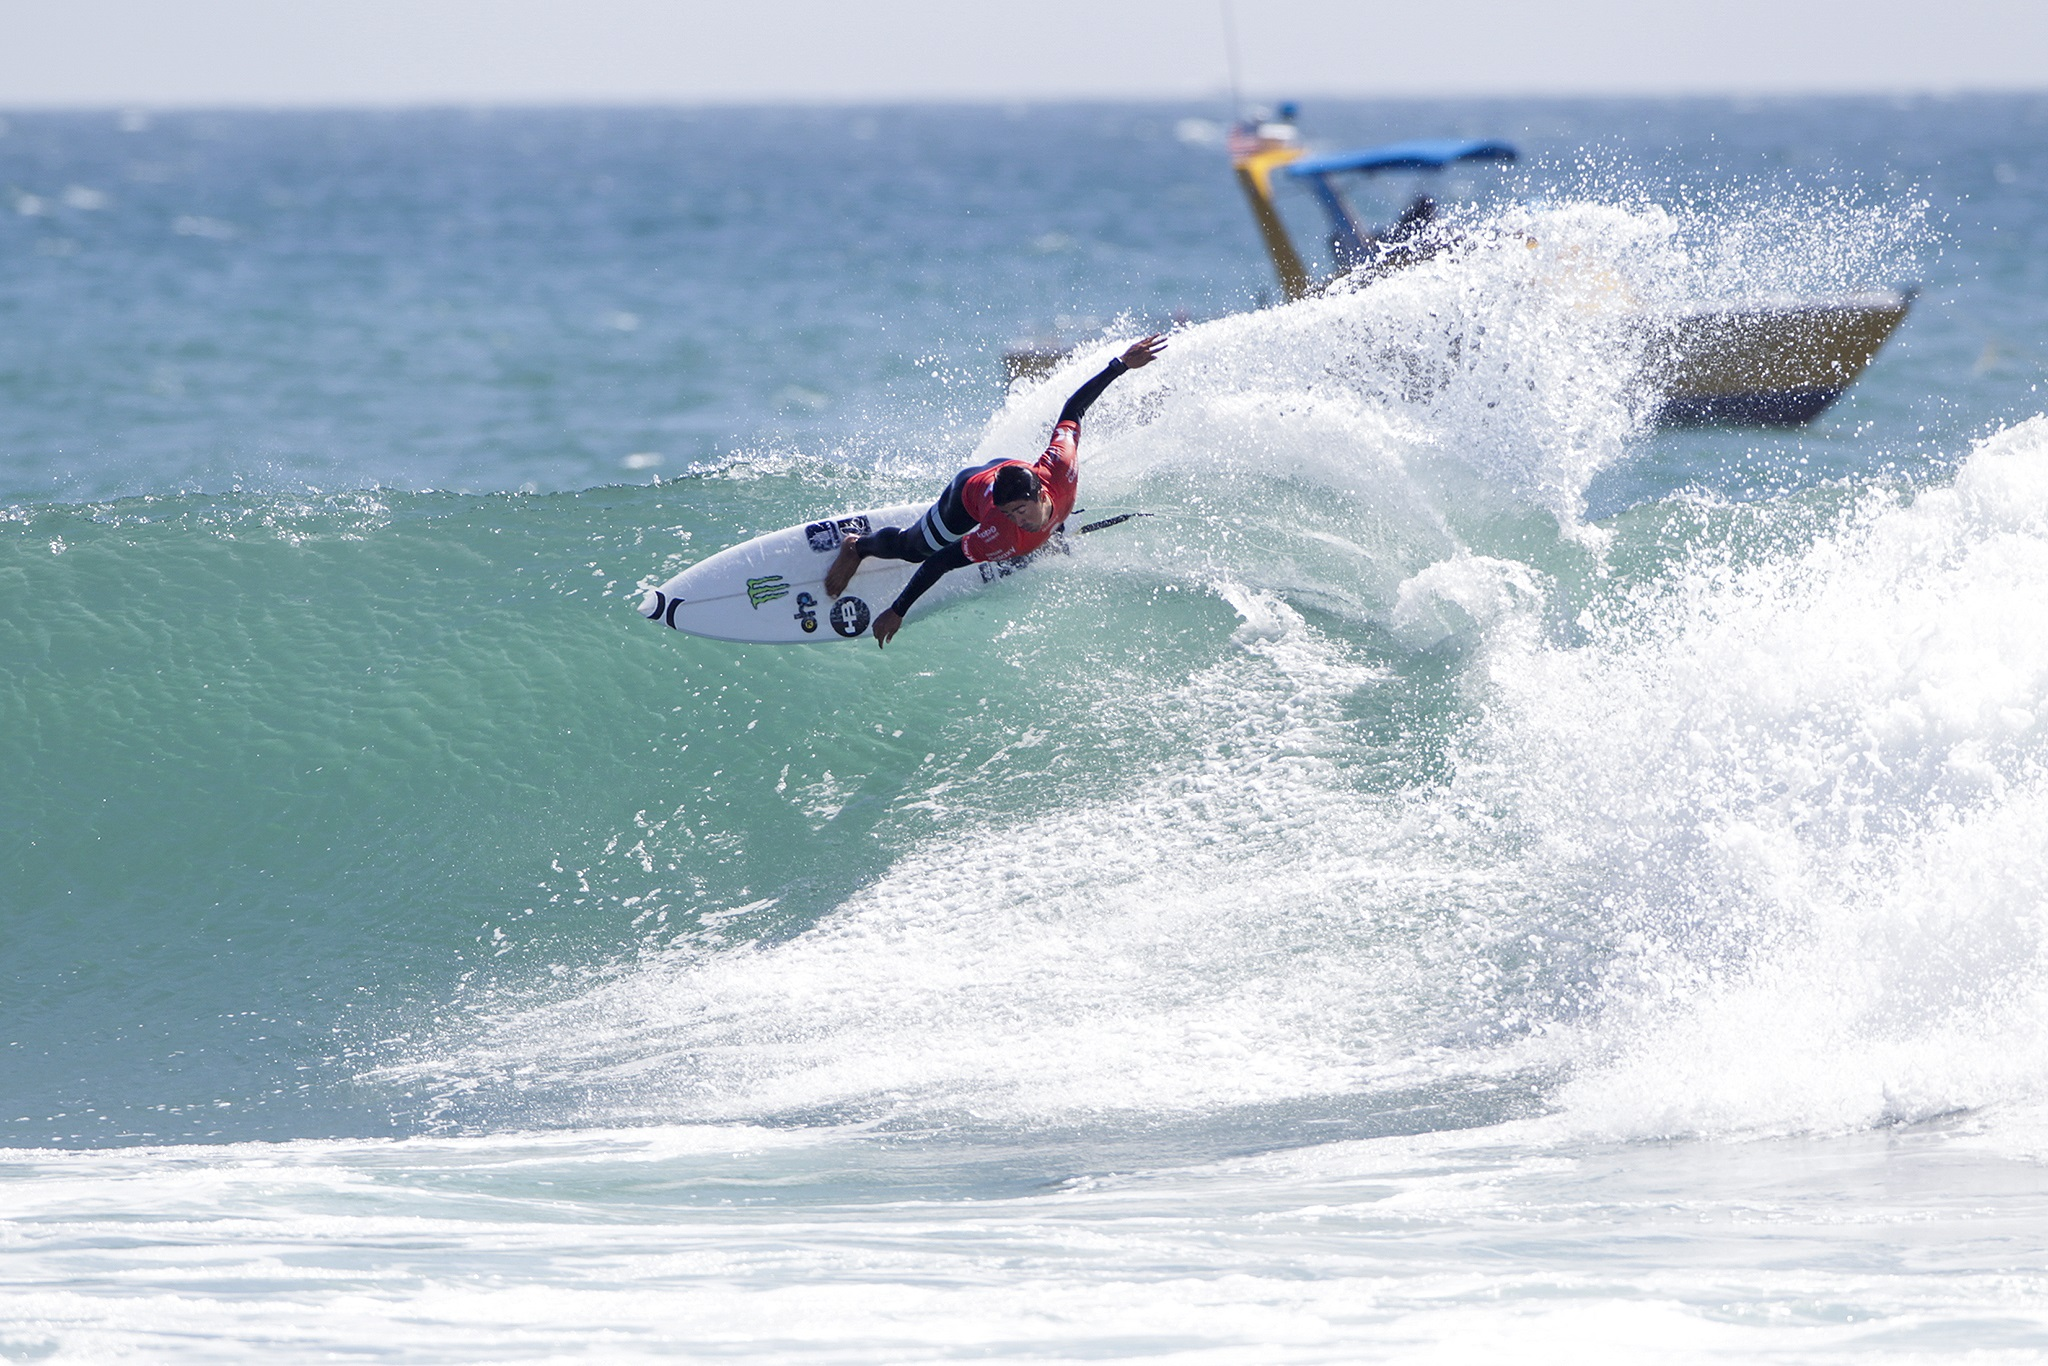 Miguel Pupo winning Heat 12 of Round Two of the Hurley Pro Trestles.